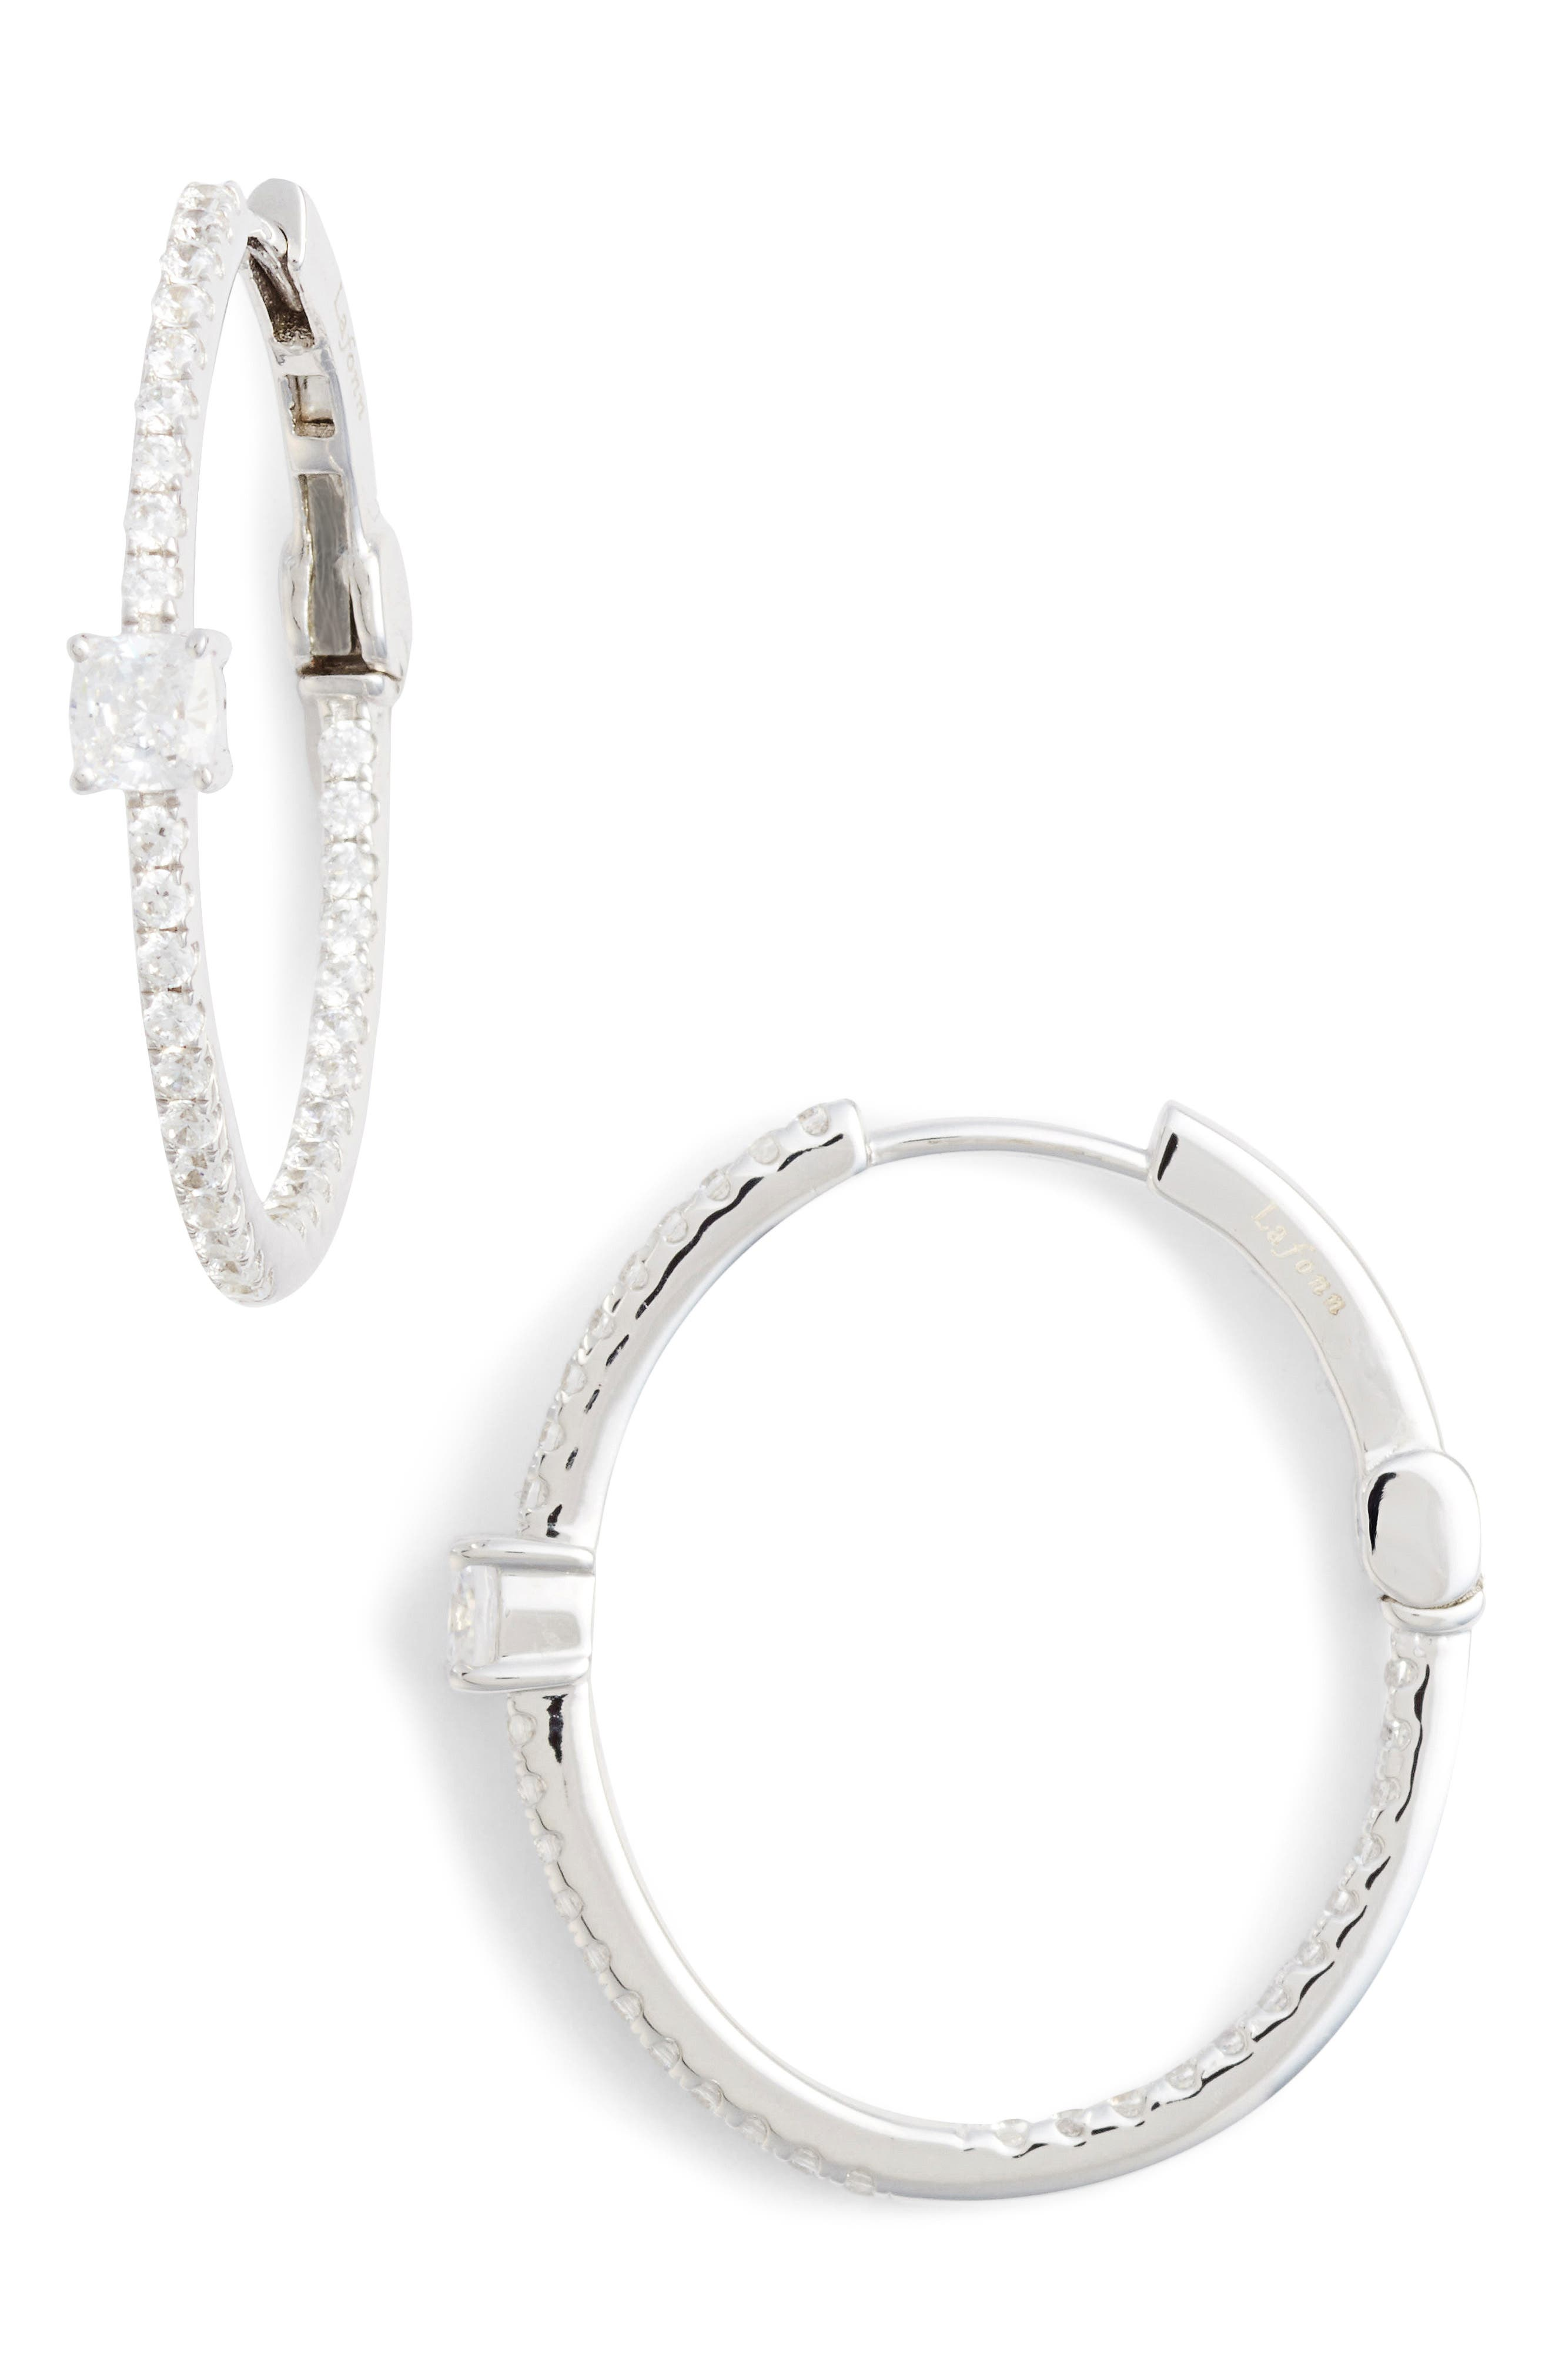 Simulated Diamond Hoop Earrings,                         Main,                         color, Silver/ Clear